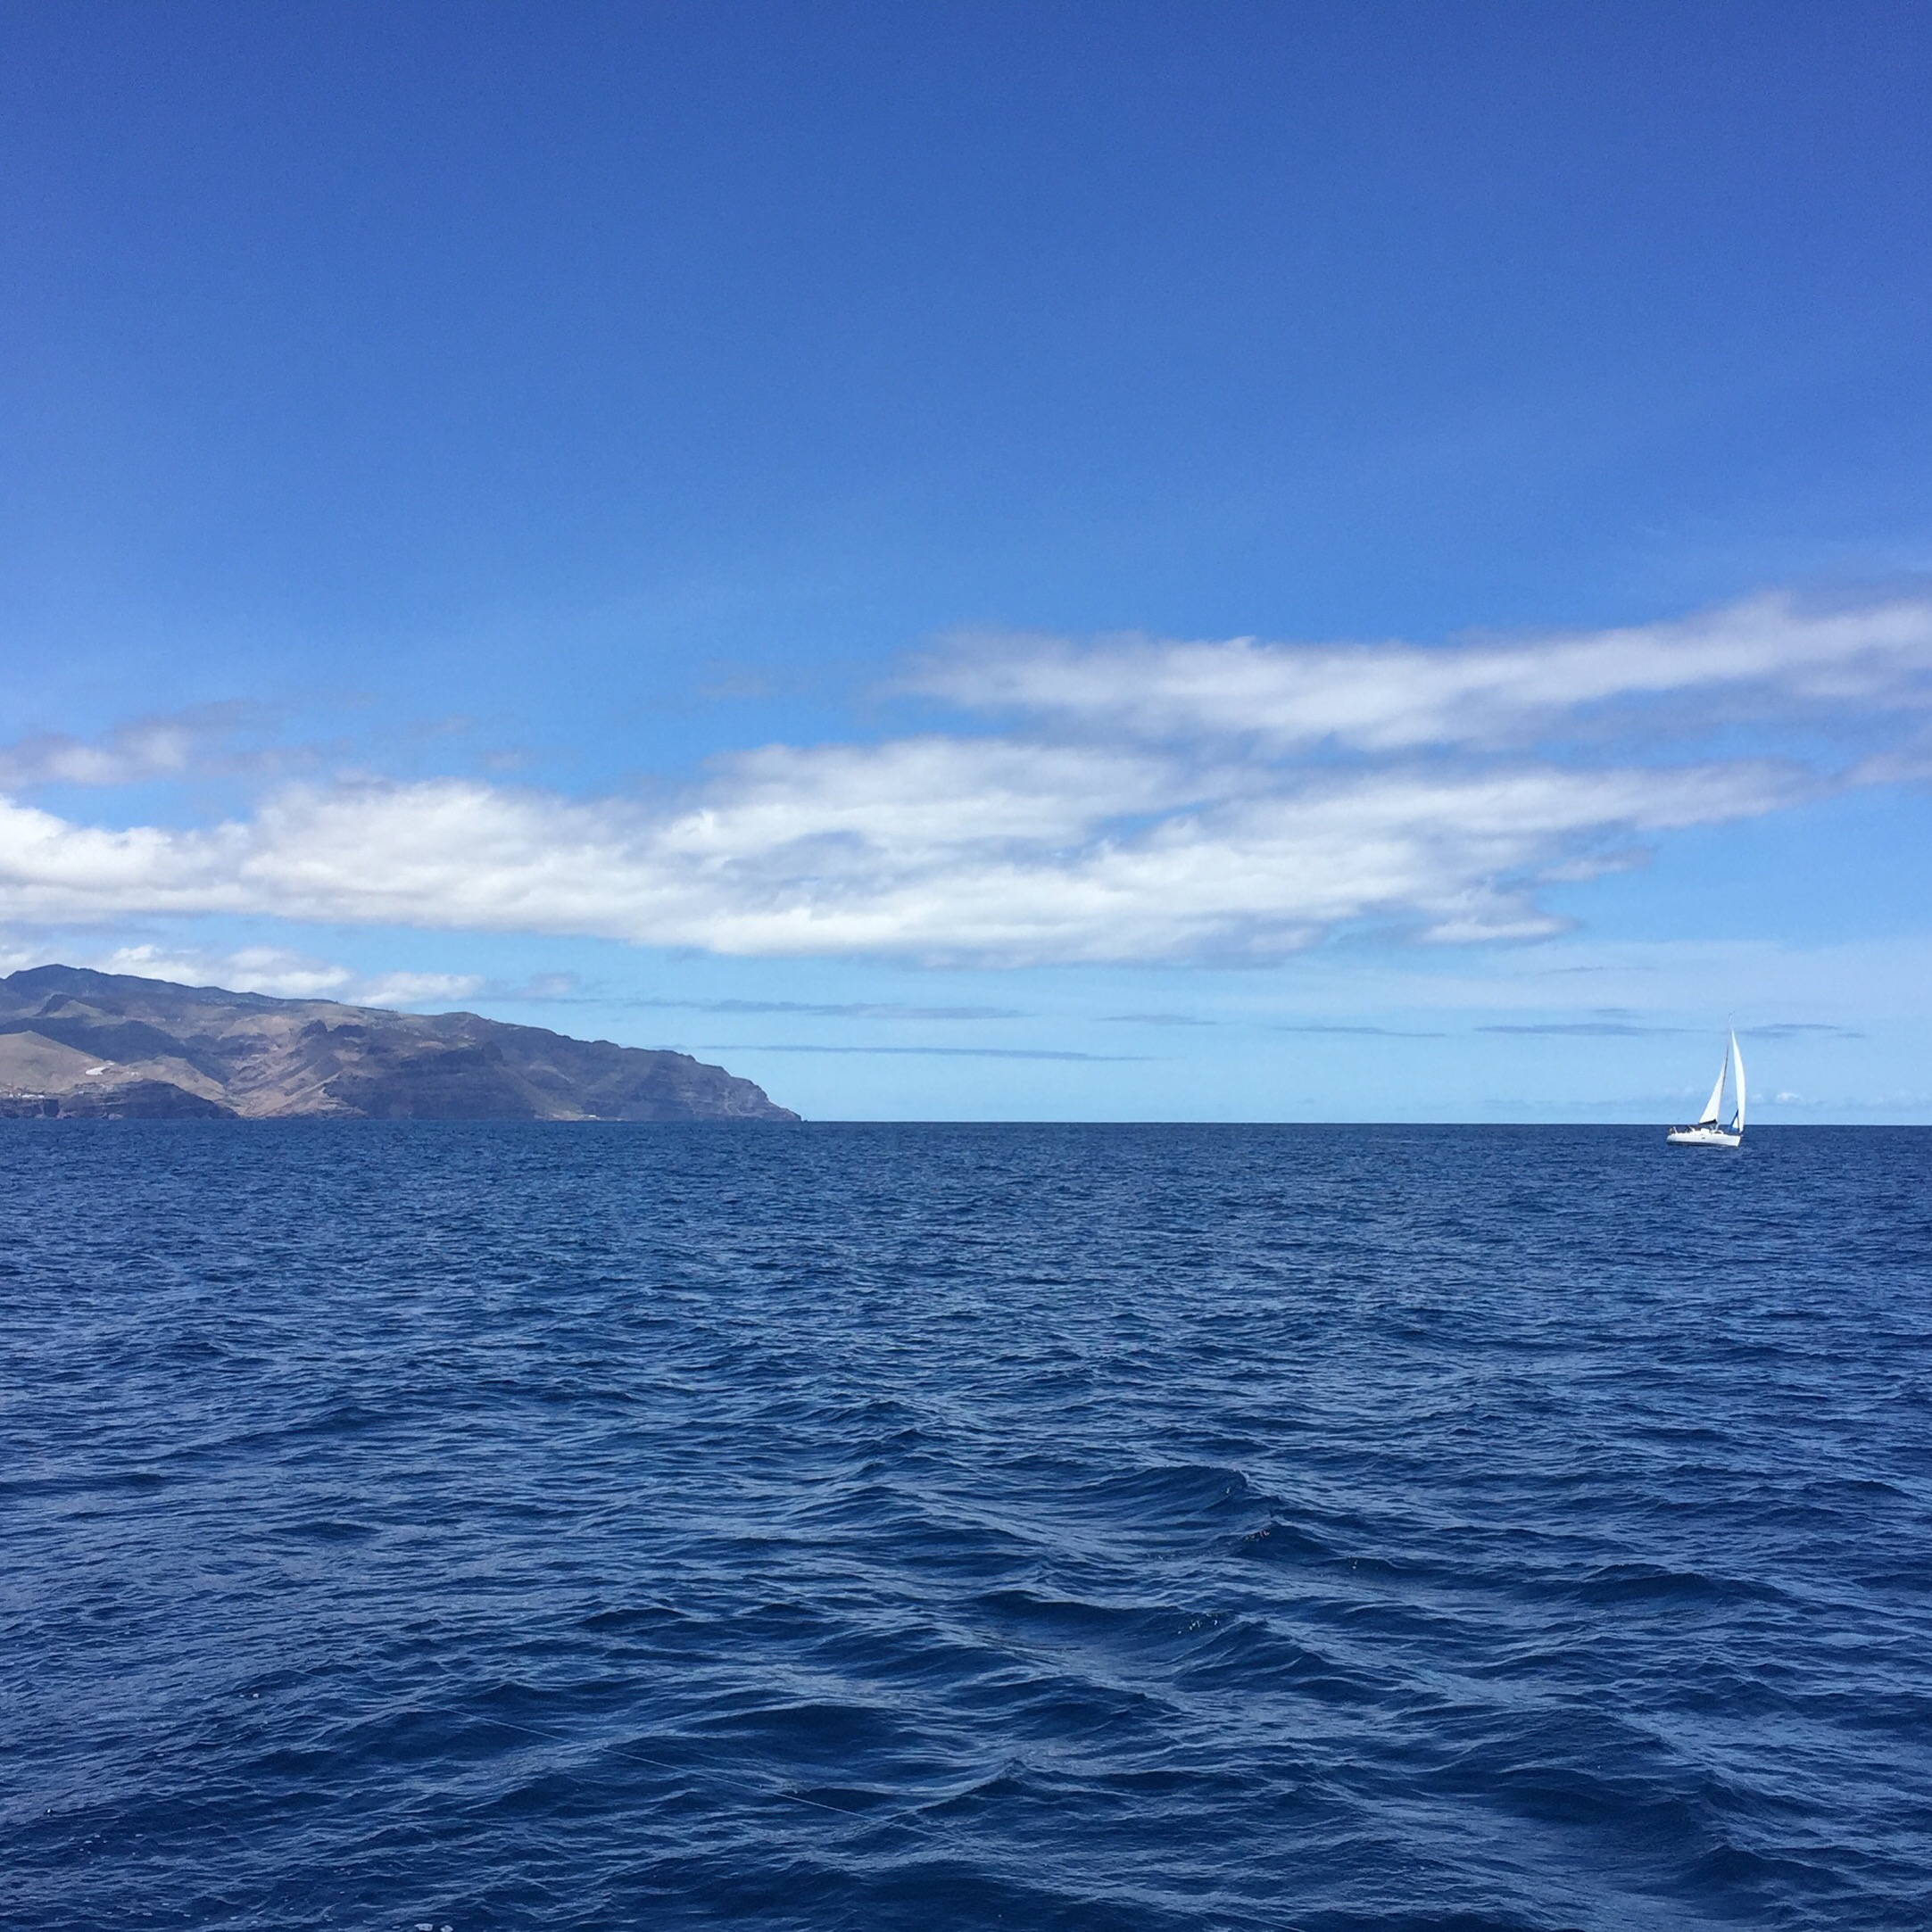 Sailing around the Canaries